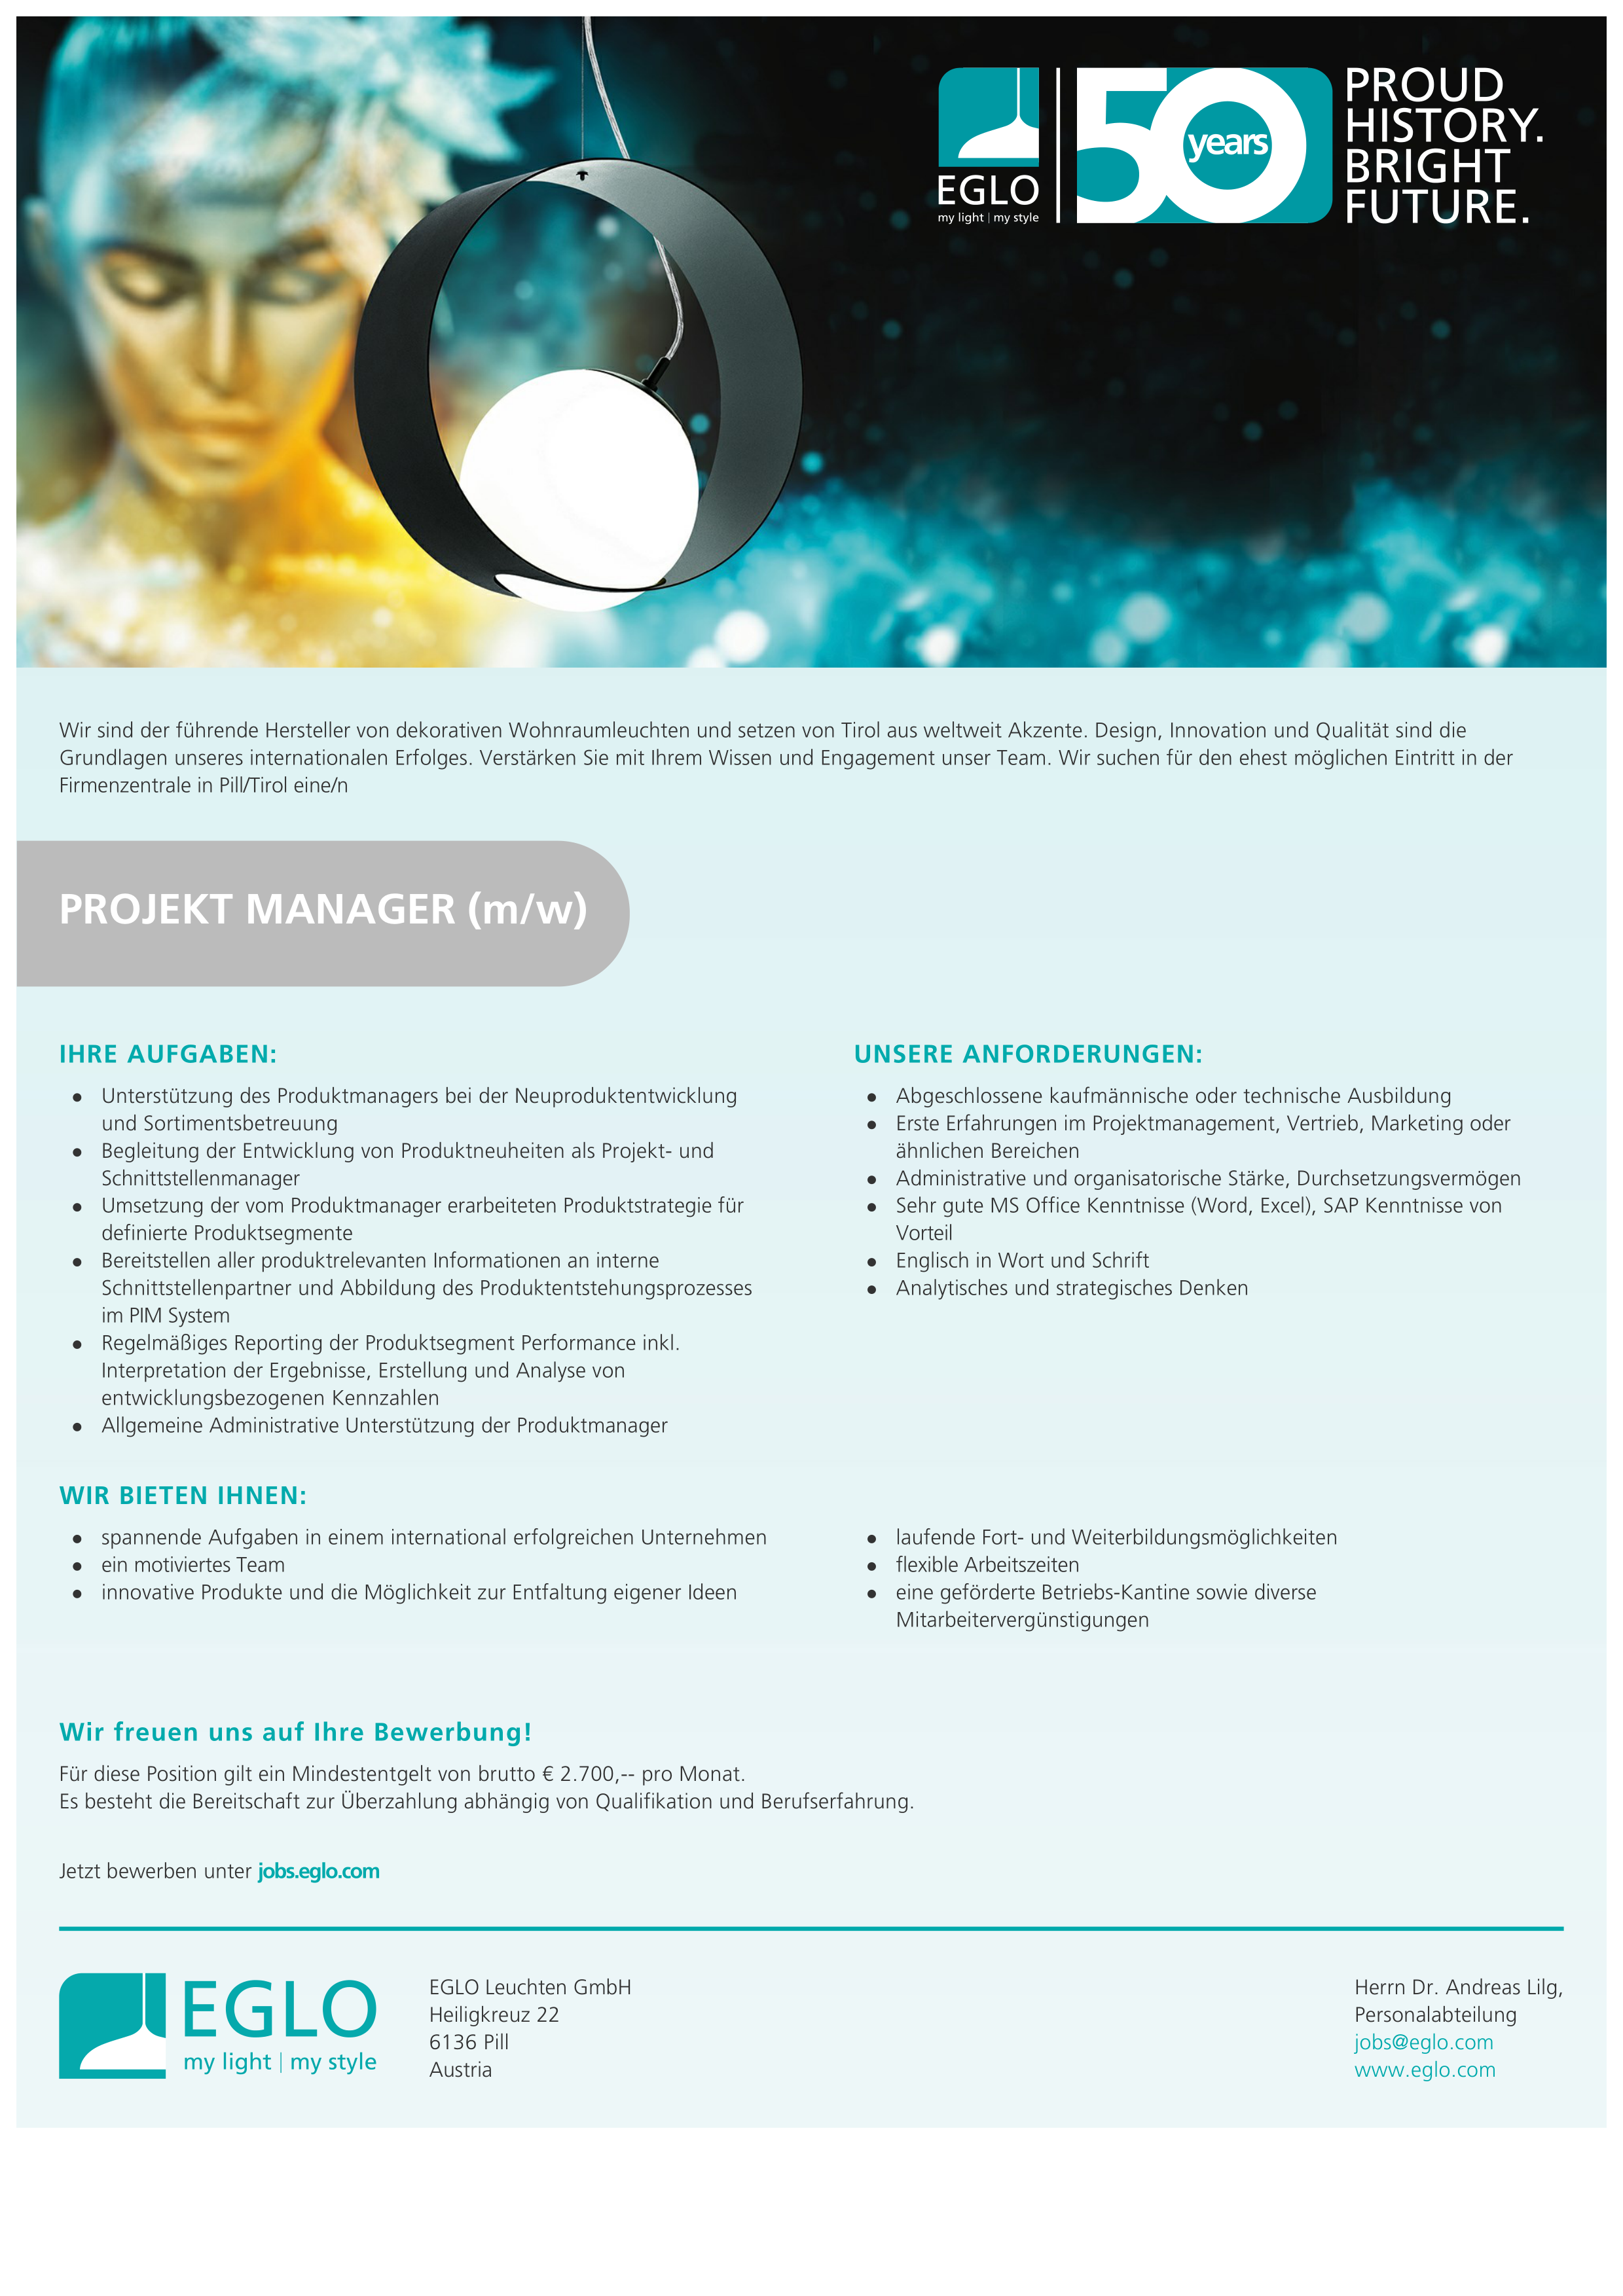 PROJEKT MANAGER (m/w)